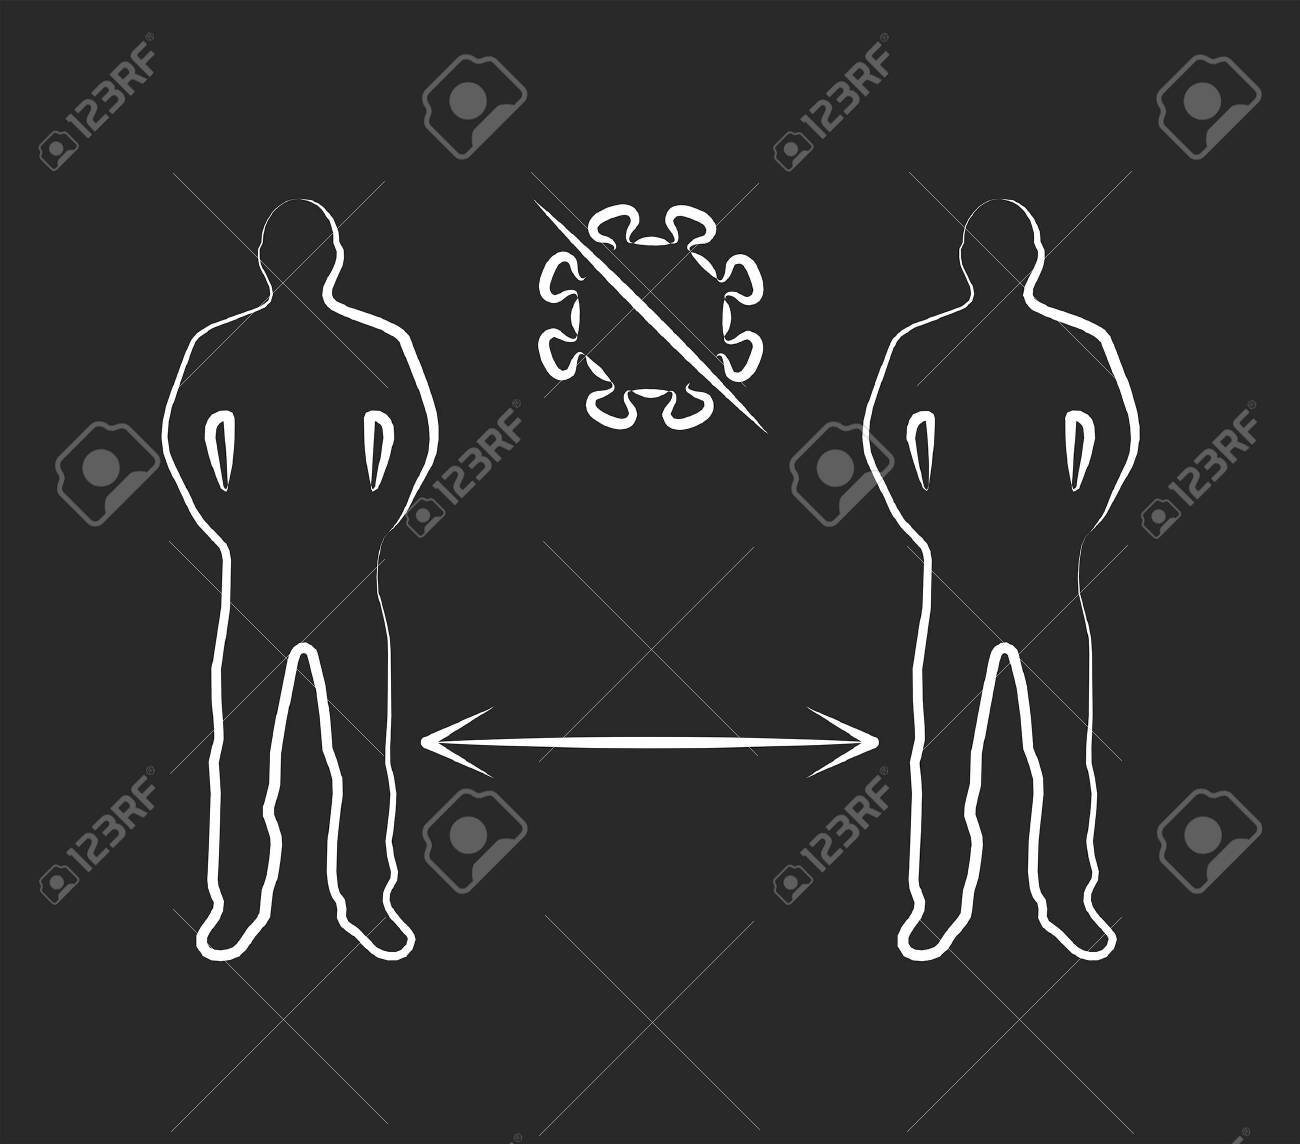 Social distance icon. Epidemic, pandemic, icons, infographics vector - 145121697